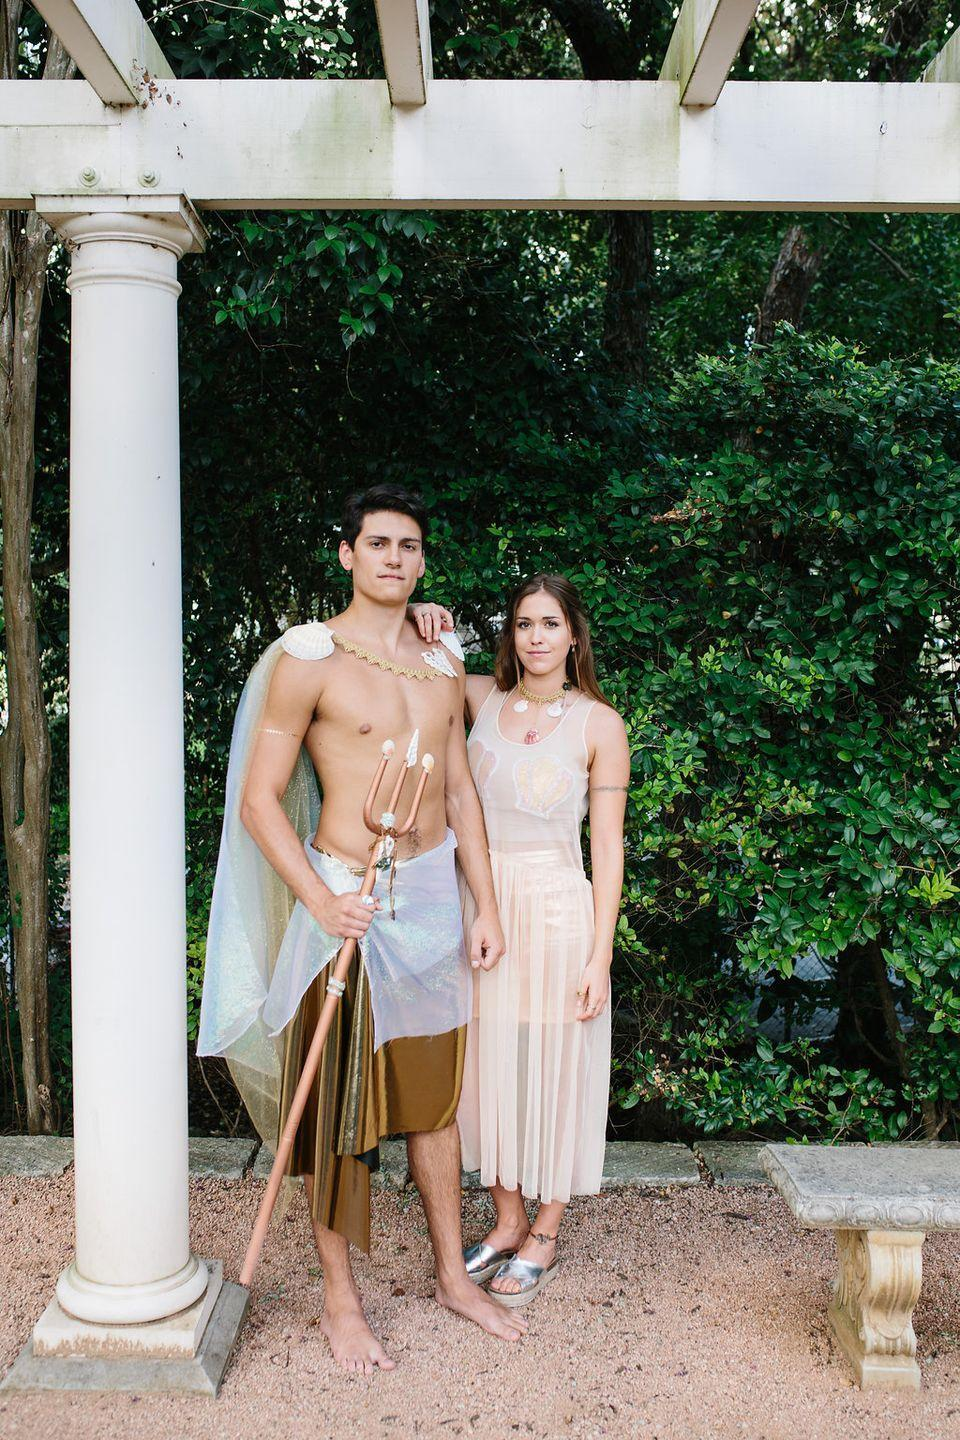 """<p>Convince your bestie to show little skin and go as mermaids. All you need is a few iridescent accessories to make this costume a reality. </p><p><strong>Get the tutorial at <a href=""""https://theeffortlesschic.com/diy-halloween-mermaid-merman-couples-costume/"""" rel=""""nofollow noopener"""" target=""""_blank"""" data-ylk=""""slk:The Effortless Chic"""" class=""""link rapid-noclick-resp"""">The Effortless Chic</a>.</strong></p>"""